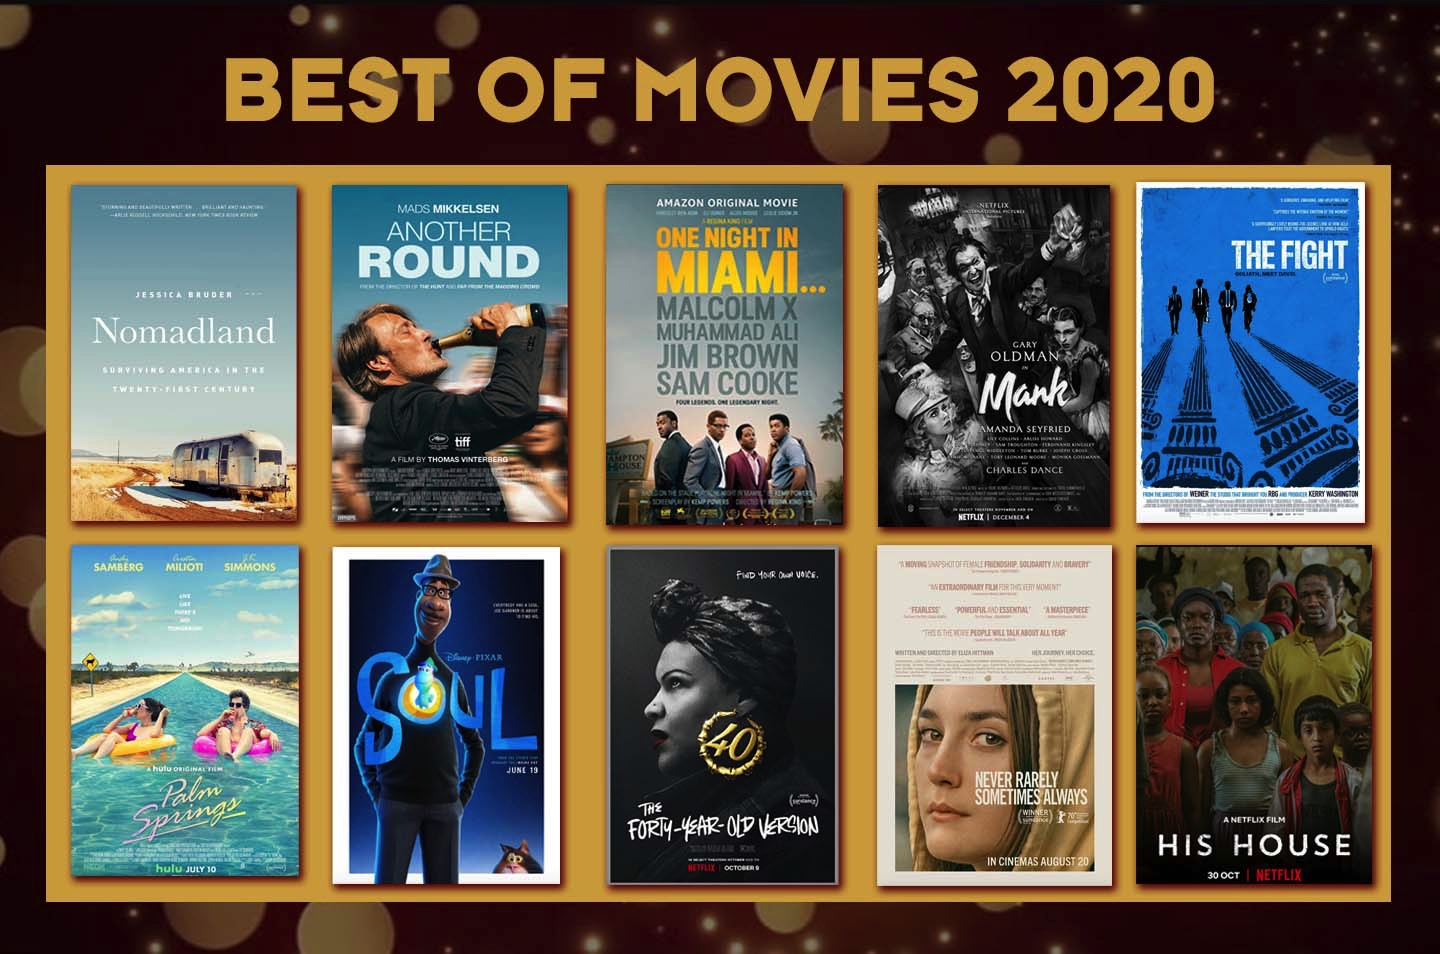 Best Of movies 2020